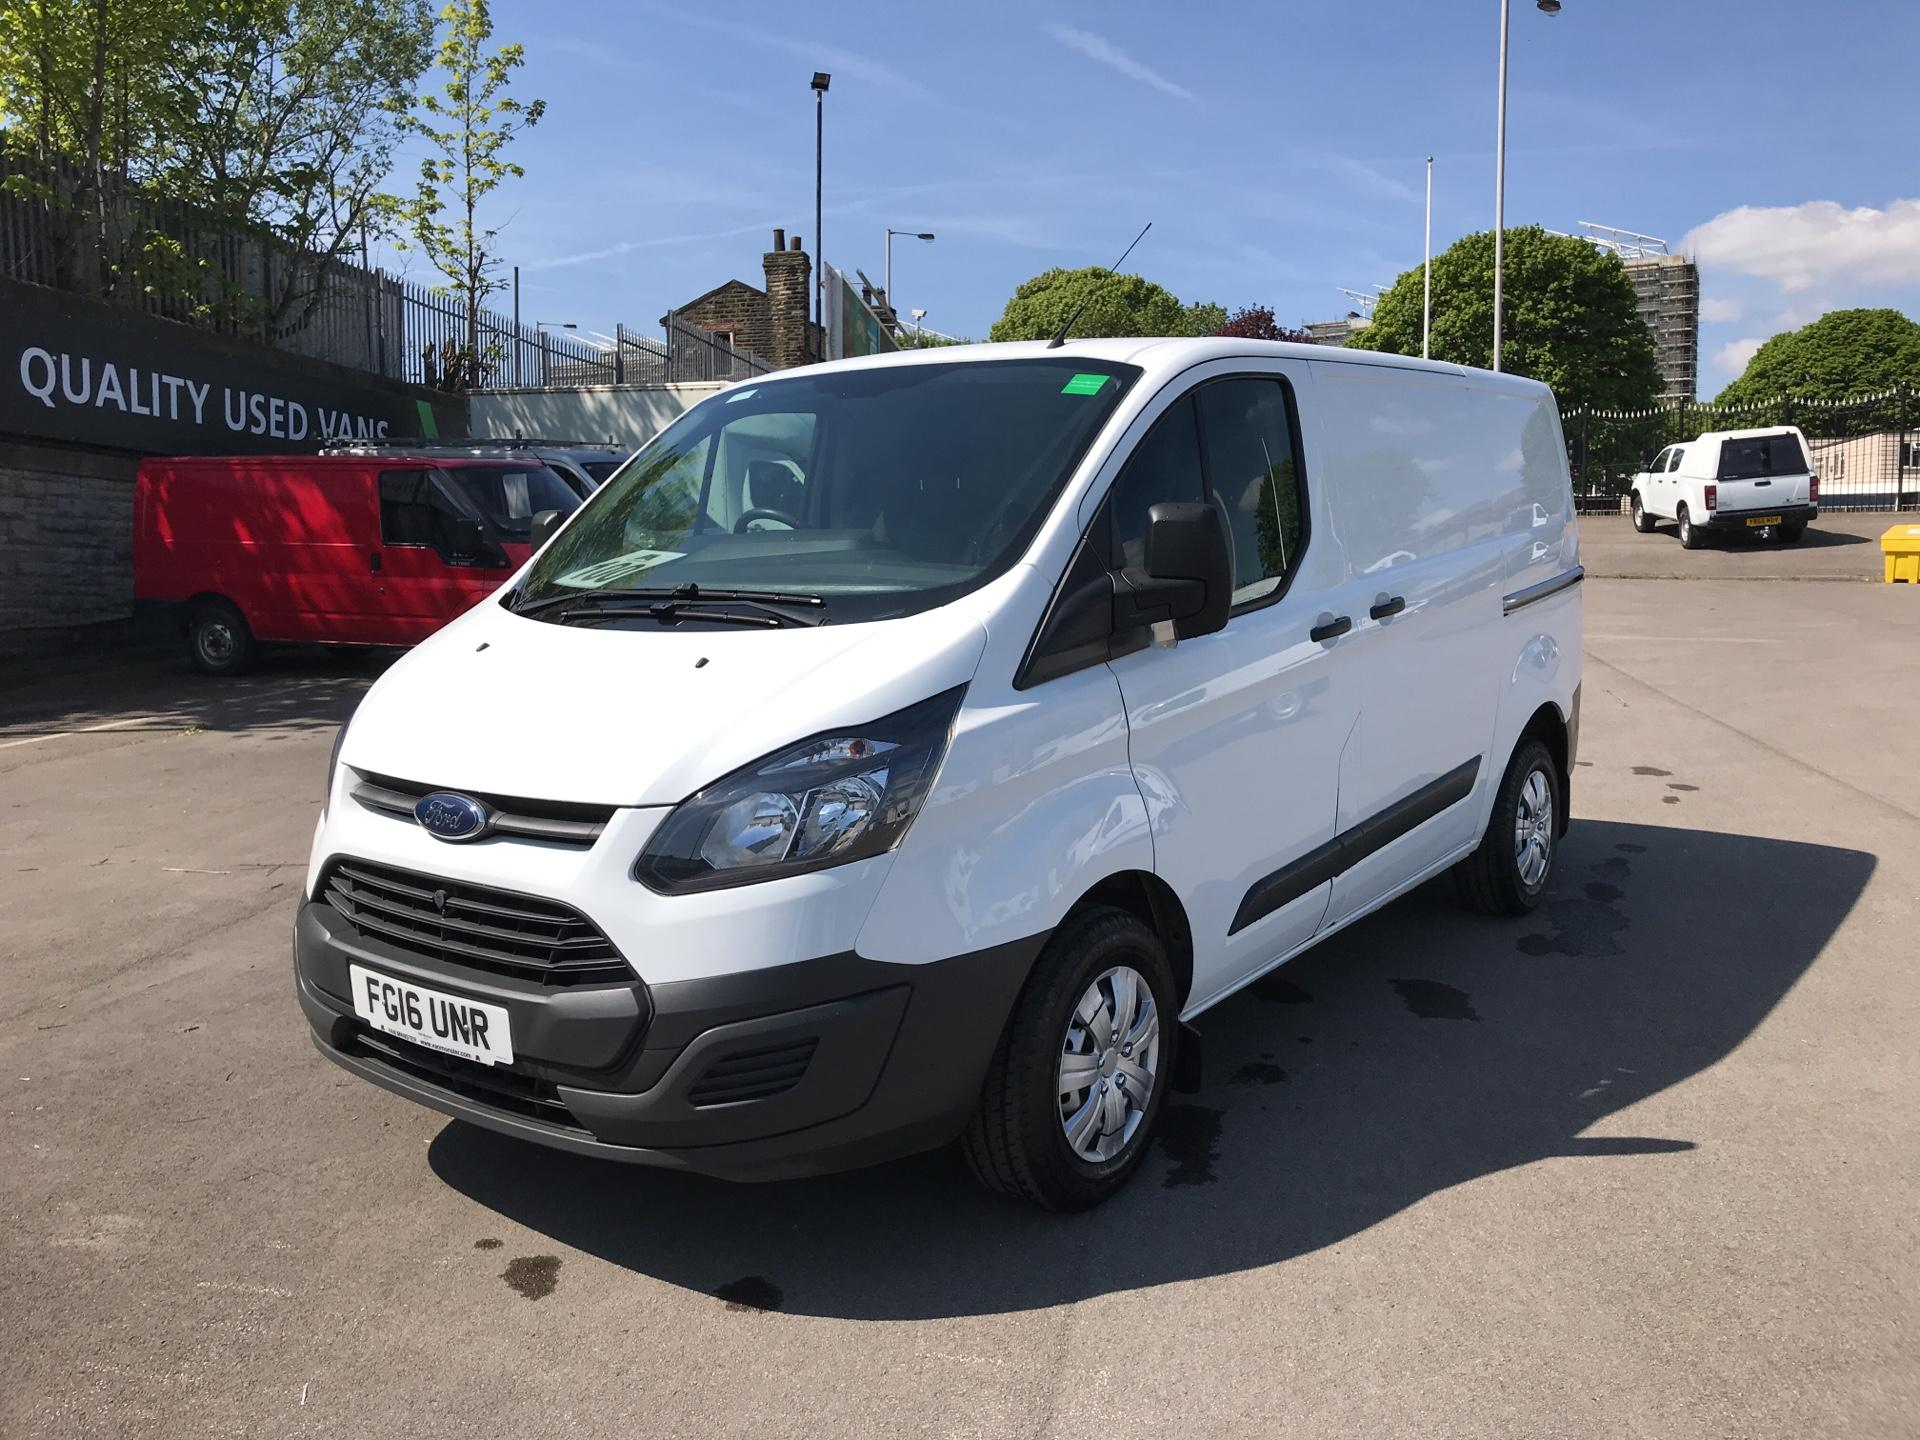 2016 Ford Transit Custom 2.2 Tdci 100Ps Low Roof Van (FG16UNR) Image 7